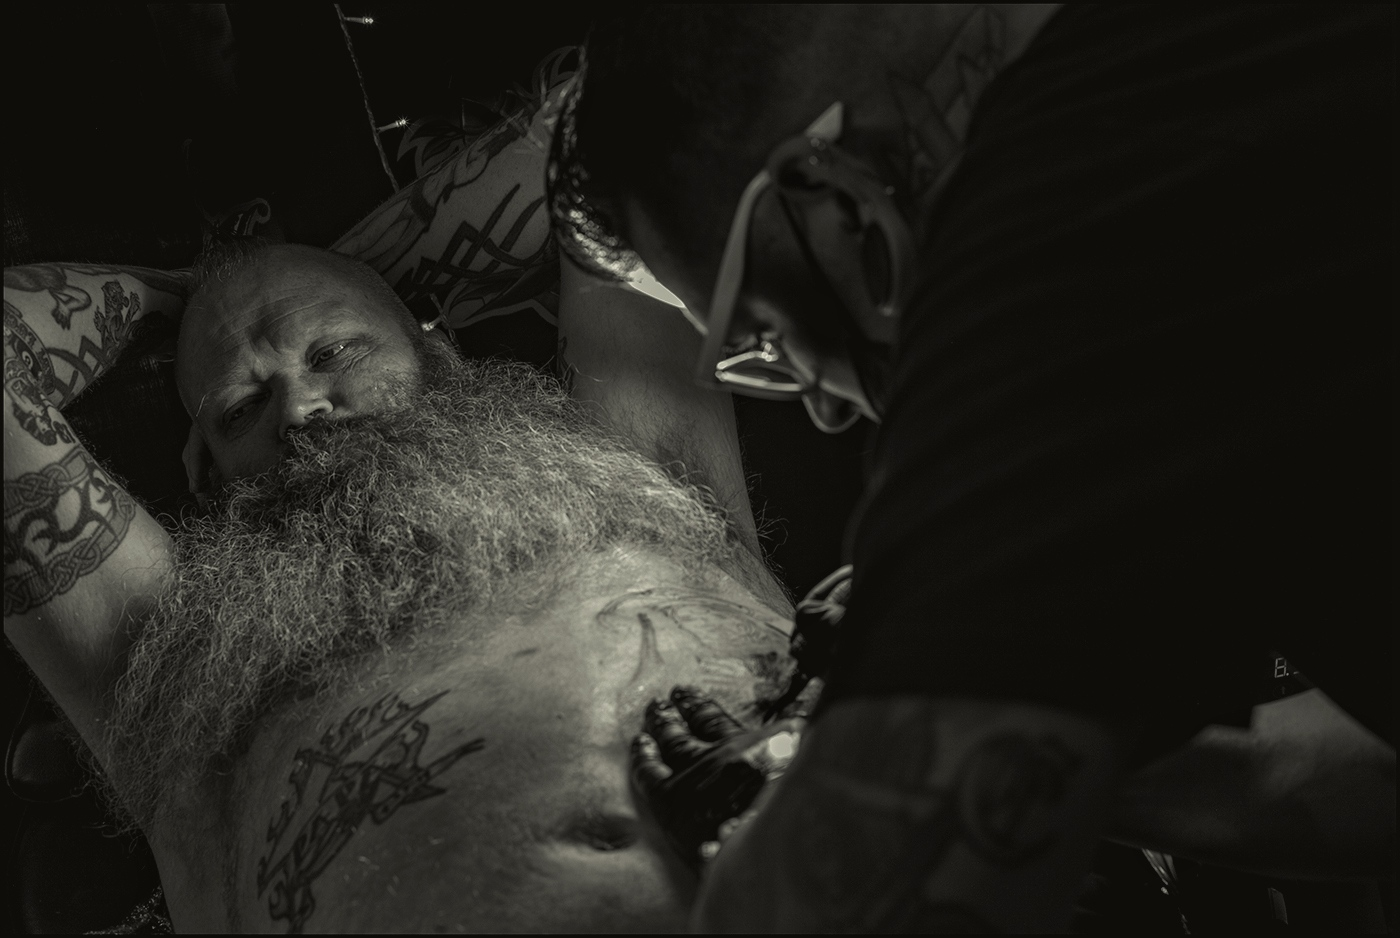 John from Mesa, Arizona having a tattoo applied. His first tattoo was in 1986. Tattoo Expo, Arizona. March 2019.